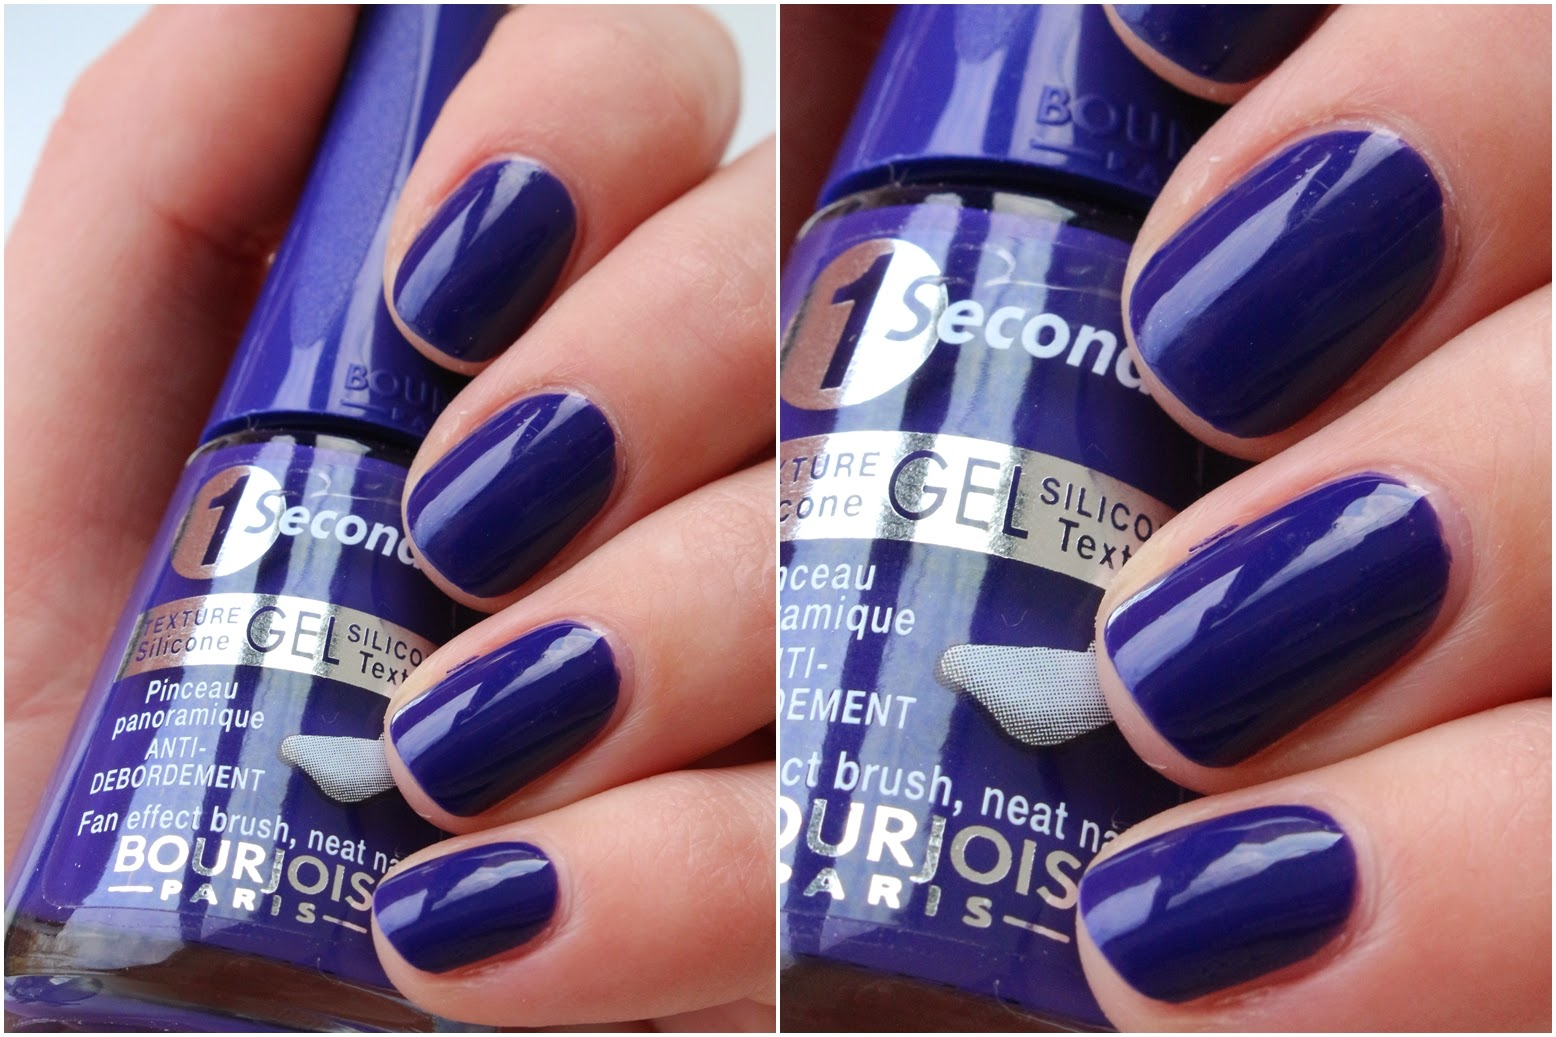 Bourjois Indigo For It